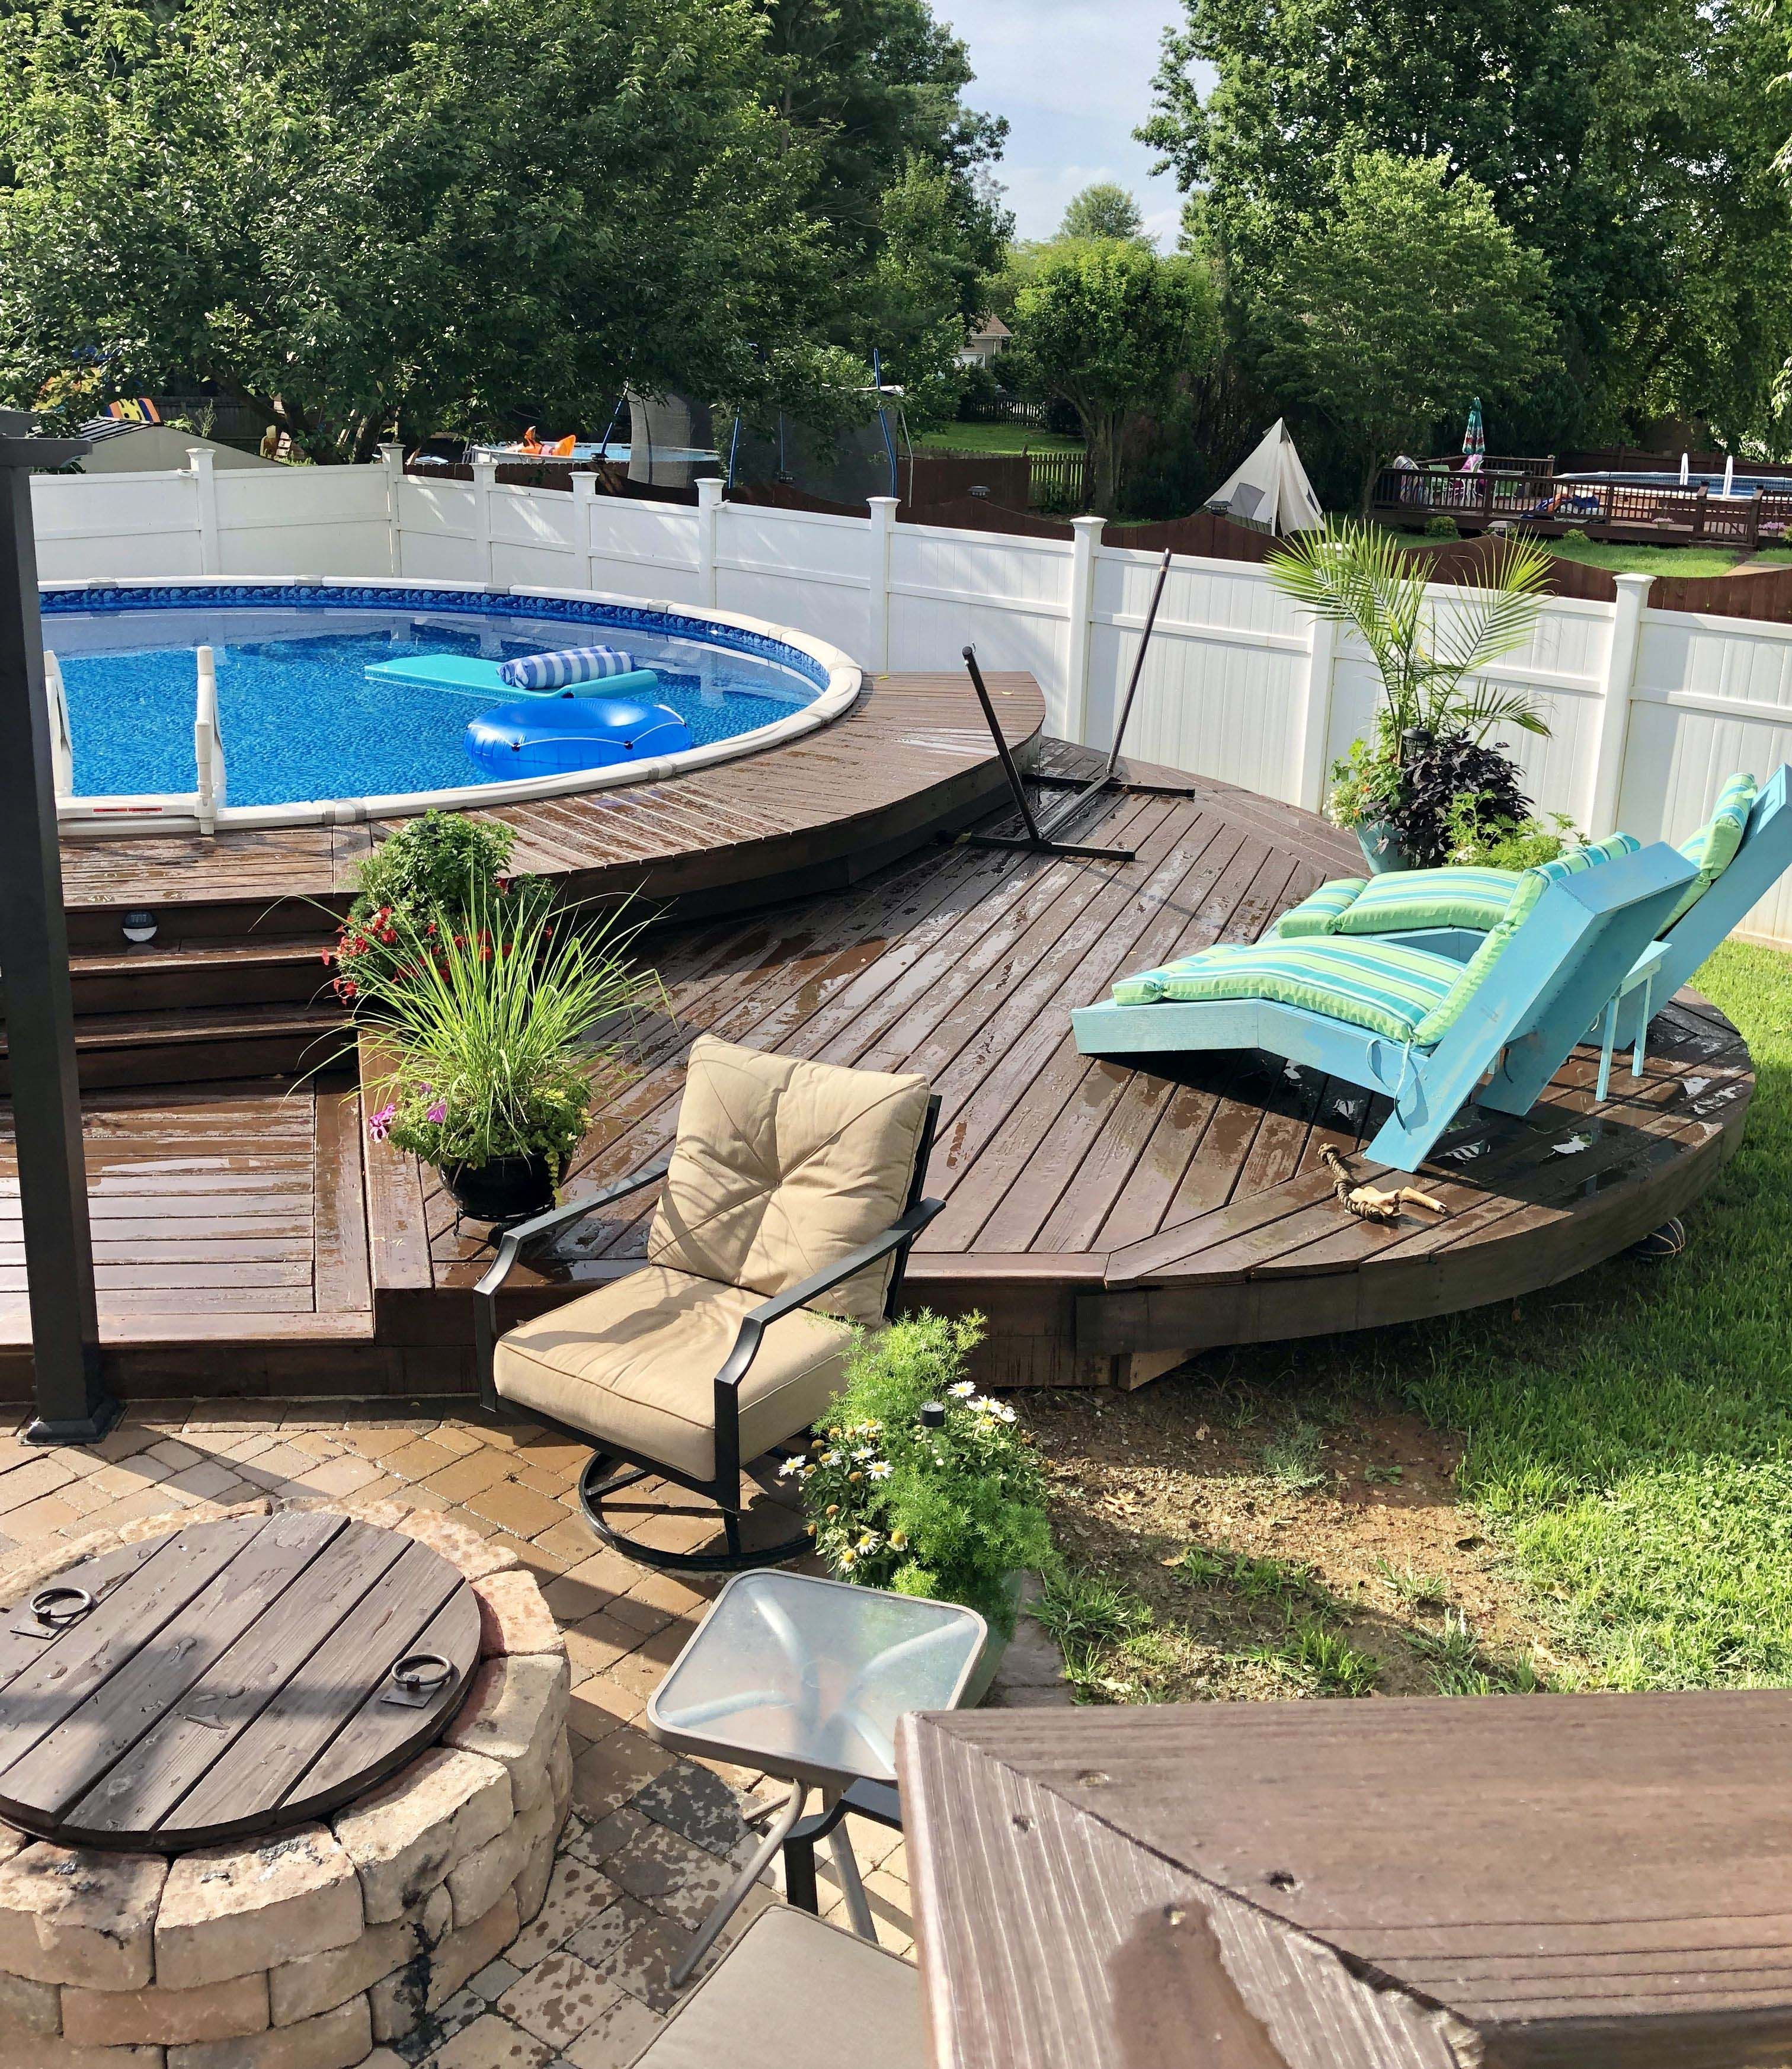 How To Open An Above Ground Pool For The First Time? in ...